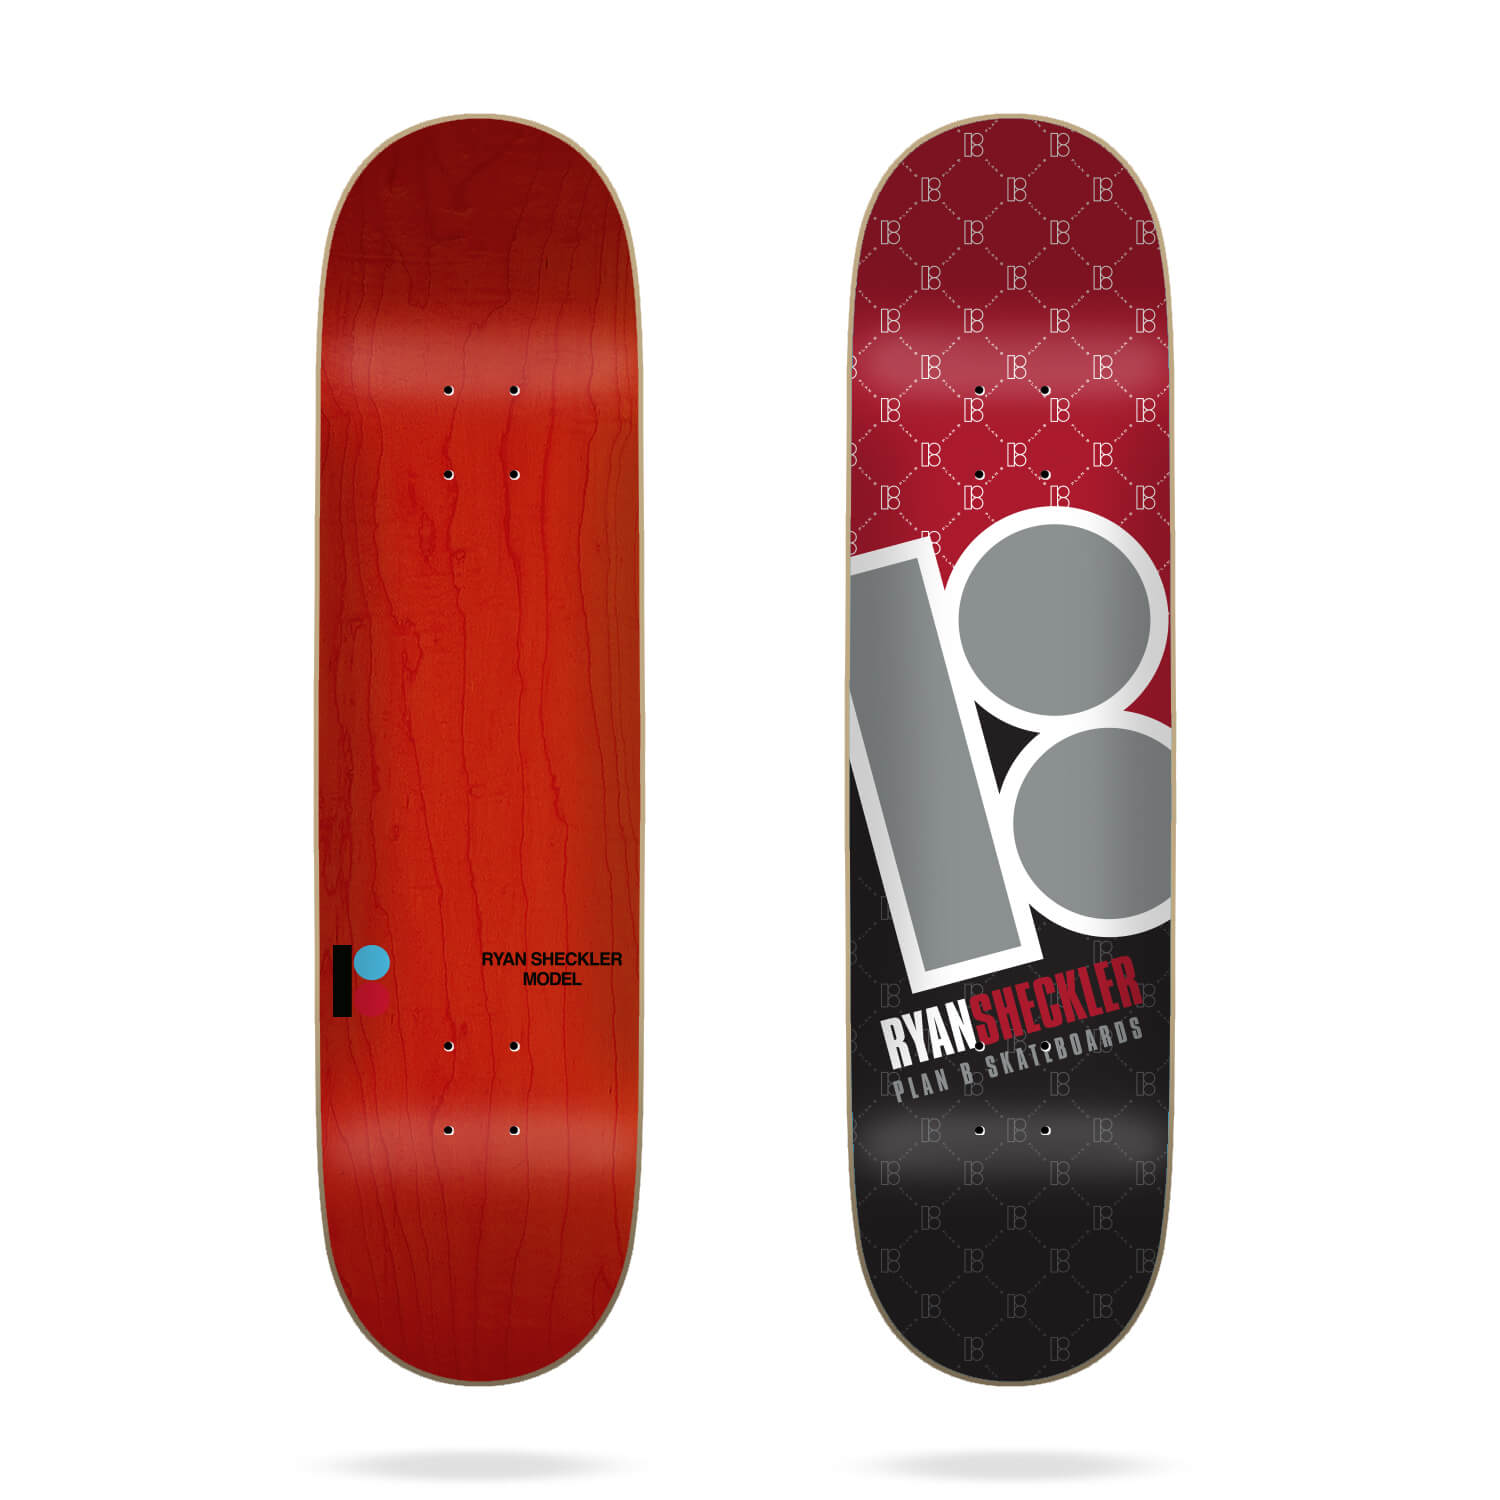 "Plan B Corner Sheckler 8.125"" Deck"